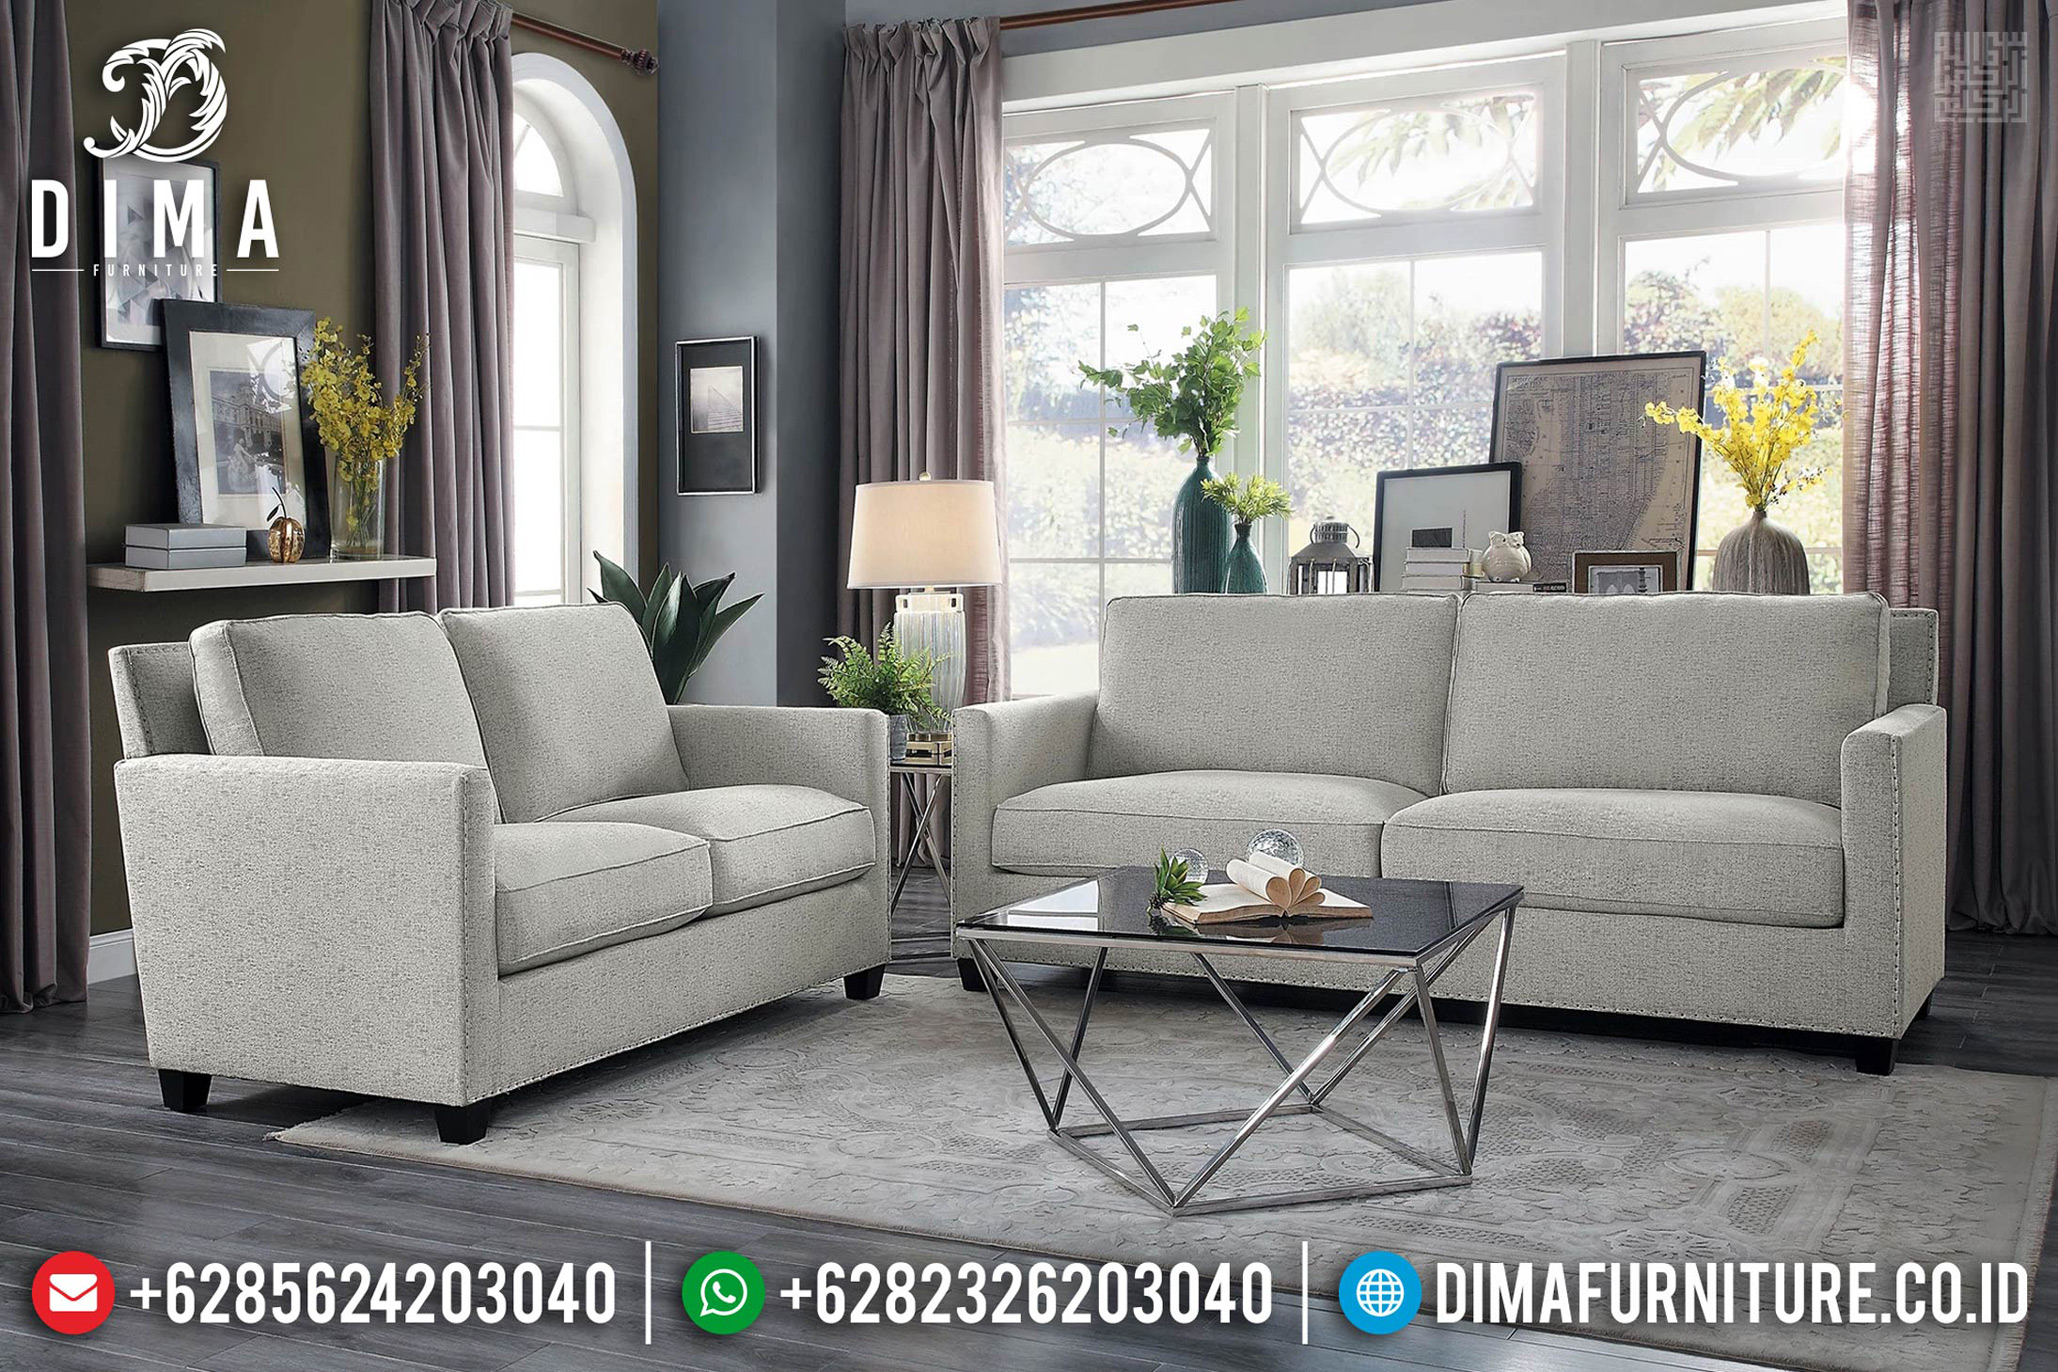 Desain Ruang Tamu Sofa Tamu Minimalis Modern Stainless New Model MM-0714